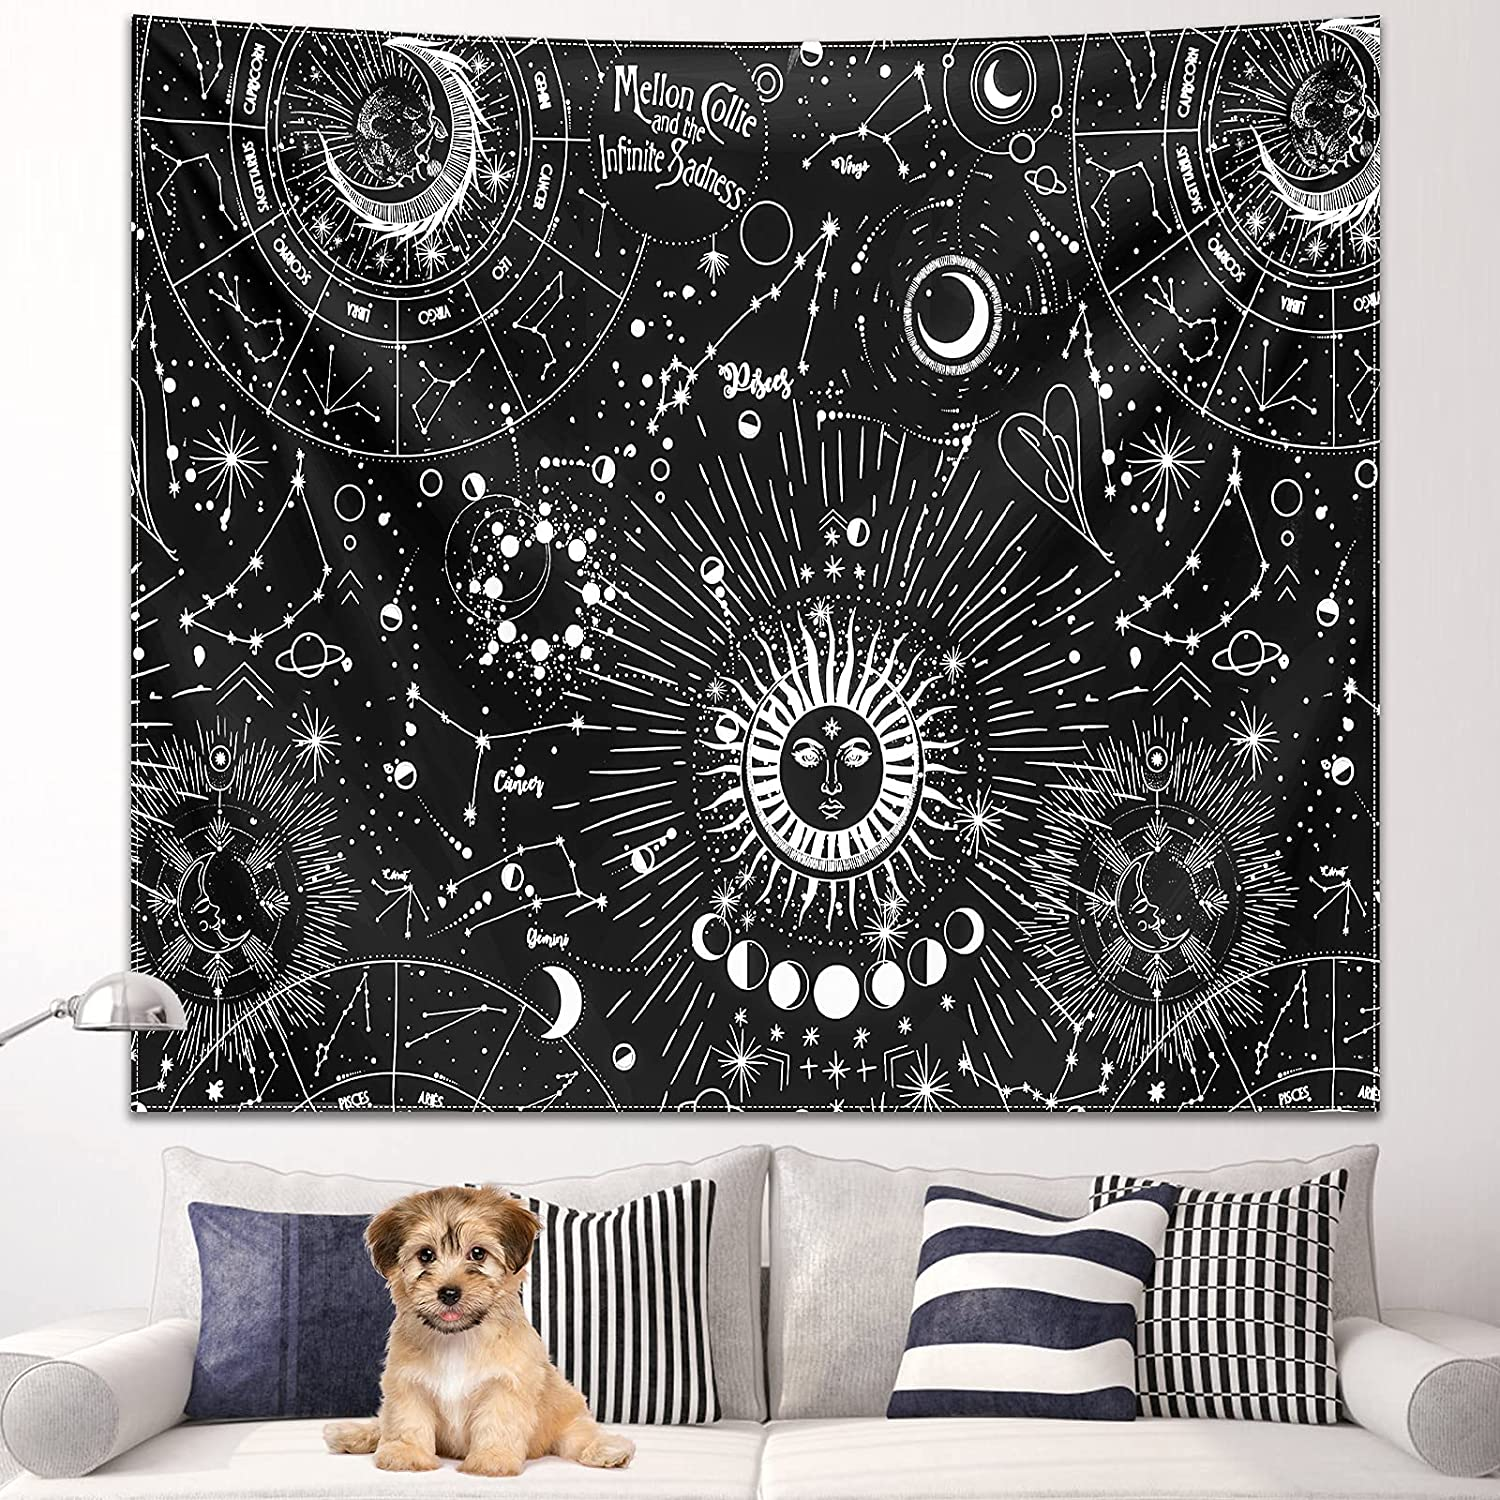 Tapestry Wall Hanging Constellation Tapestry Astrology Mountain Tapestry for bedroom aesthetic Decor Tapestry for Living Room Dorm College Mysterious Nebula Wall (L/60